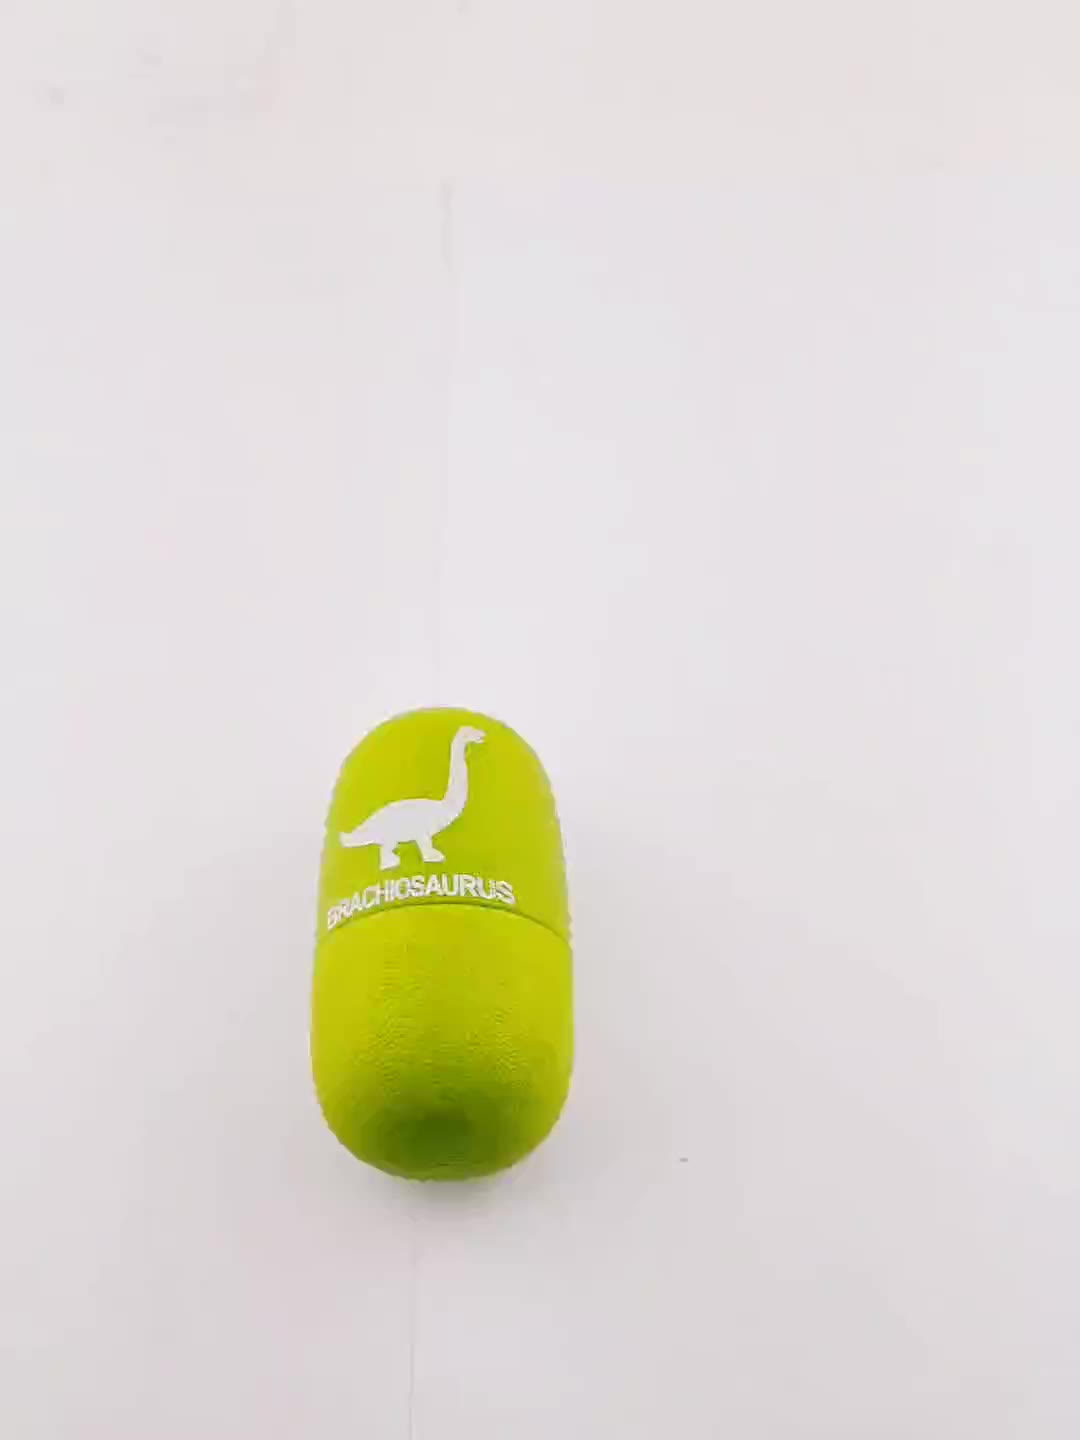 Combinable colorful surprise eggs toy candy Capsule with herbivores dinosaurs toys Manufacturers, Combinable colorful surprise eggs toy candy Capsule with herbivores dinosaurs toys Factory, Supply Combinable colorful surprise eggs toy candy Capsule with herbivores dinosaurs toys